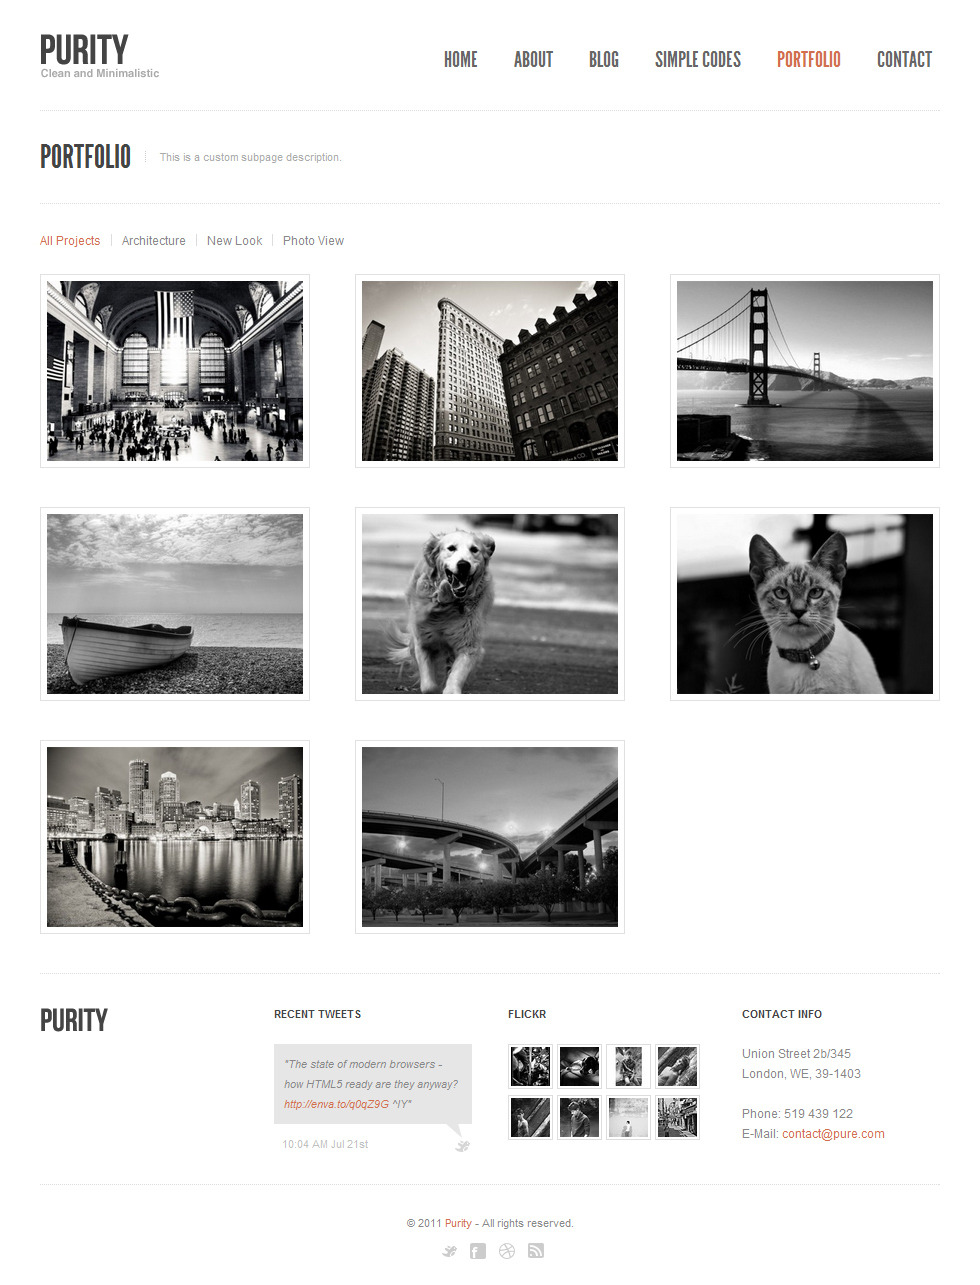 Purity: Responsive, Clean, Minimal & Bold Template by Veented ...